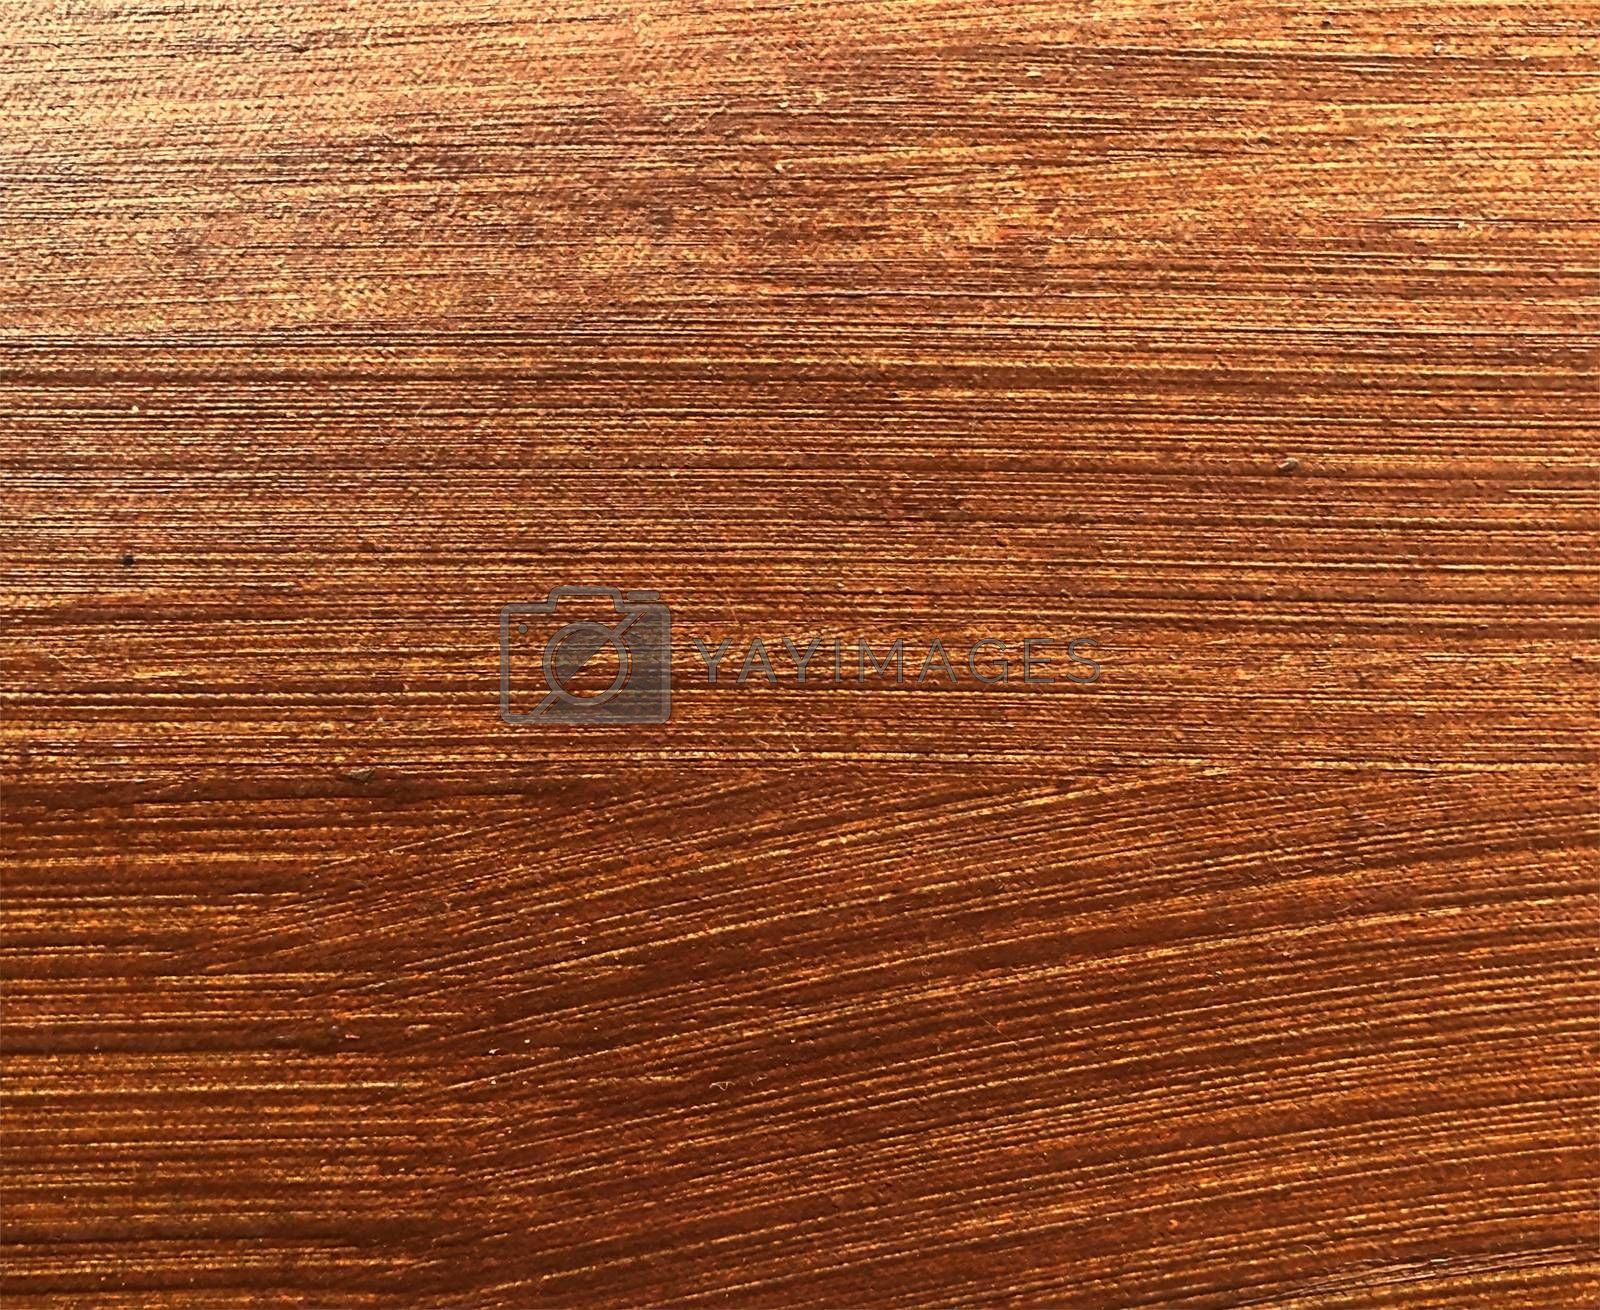 Abstract texture of brown wood with oil pasted as background image.